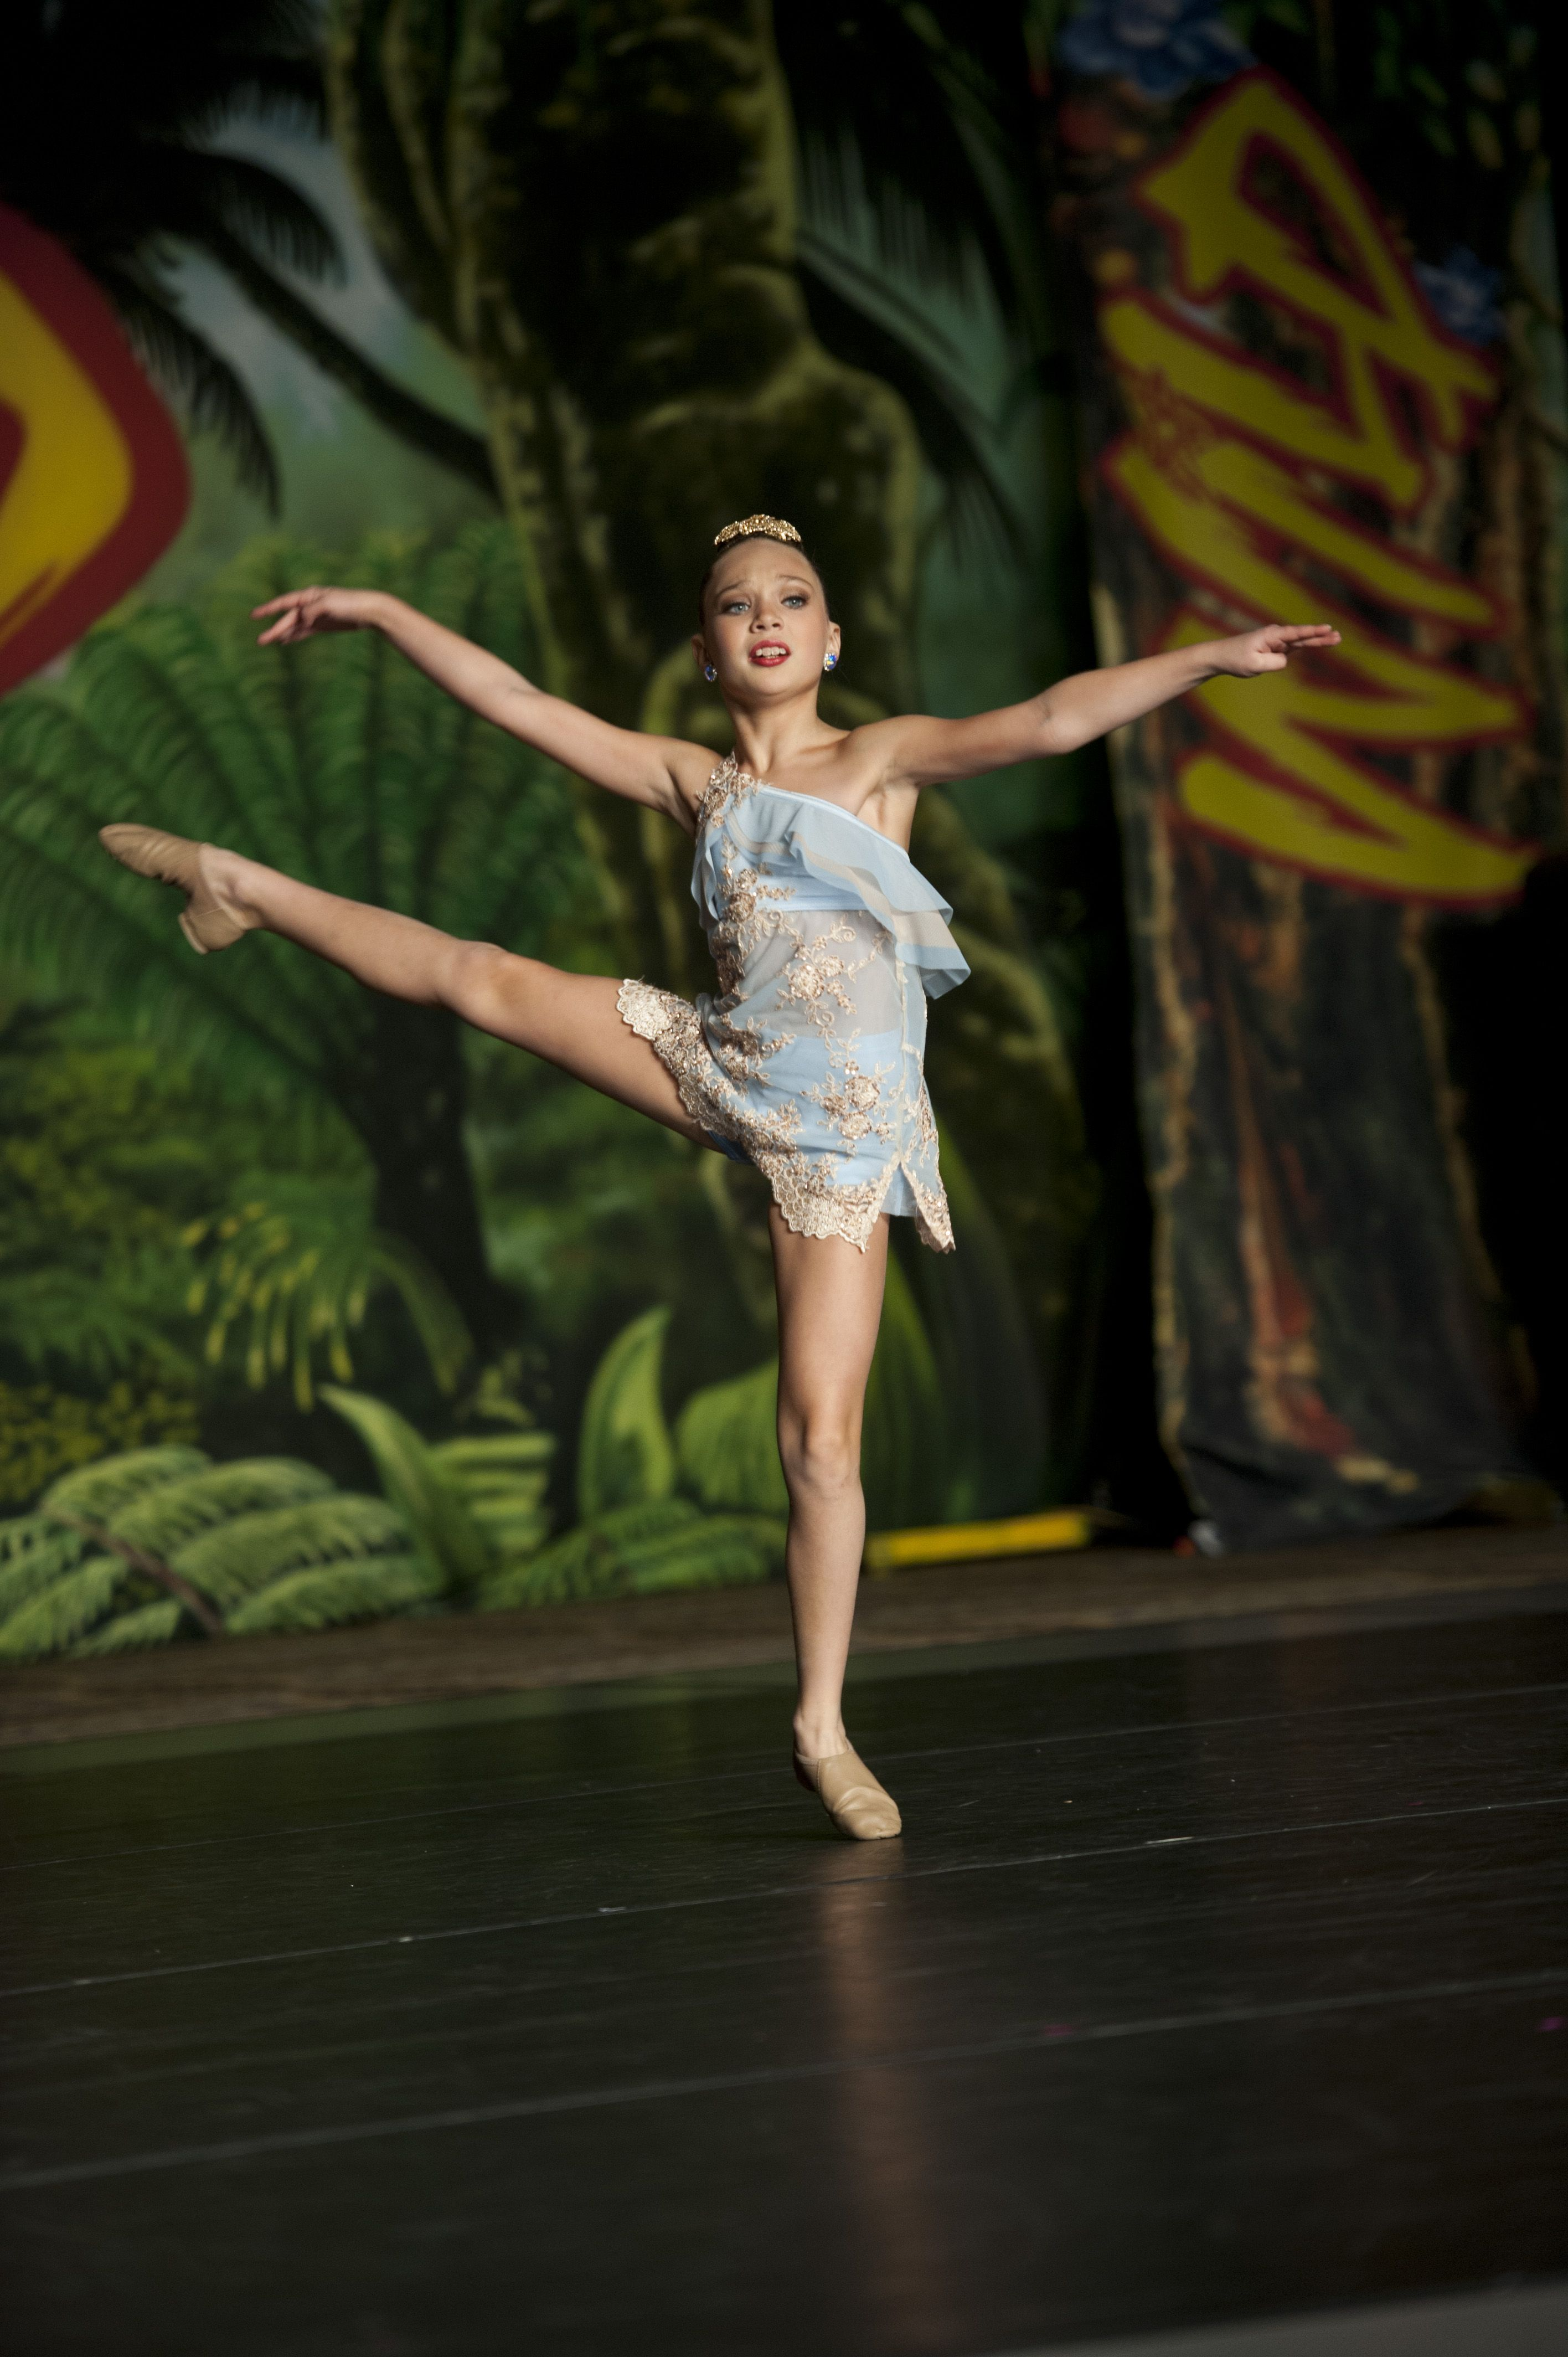 Maddie from Dance Moms performs in the girls' showcase